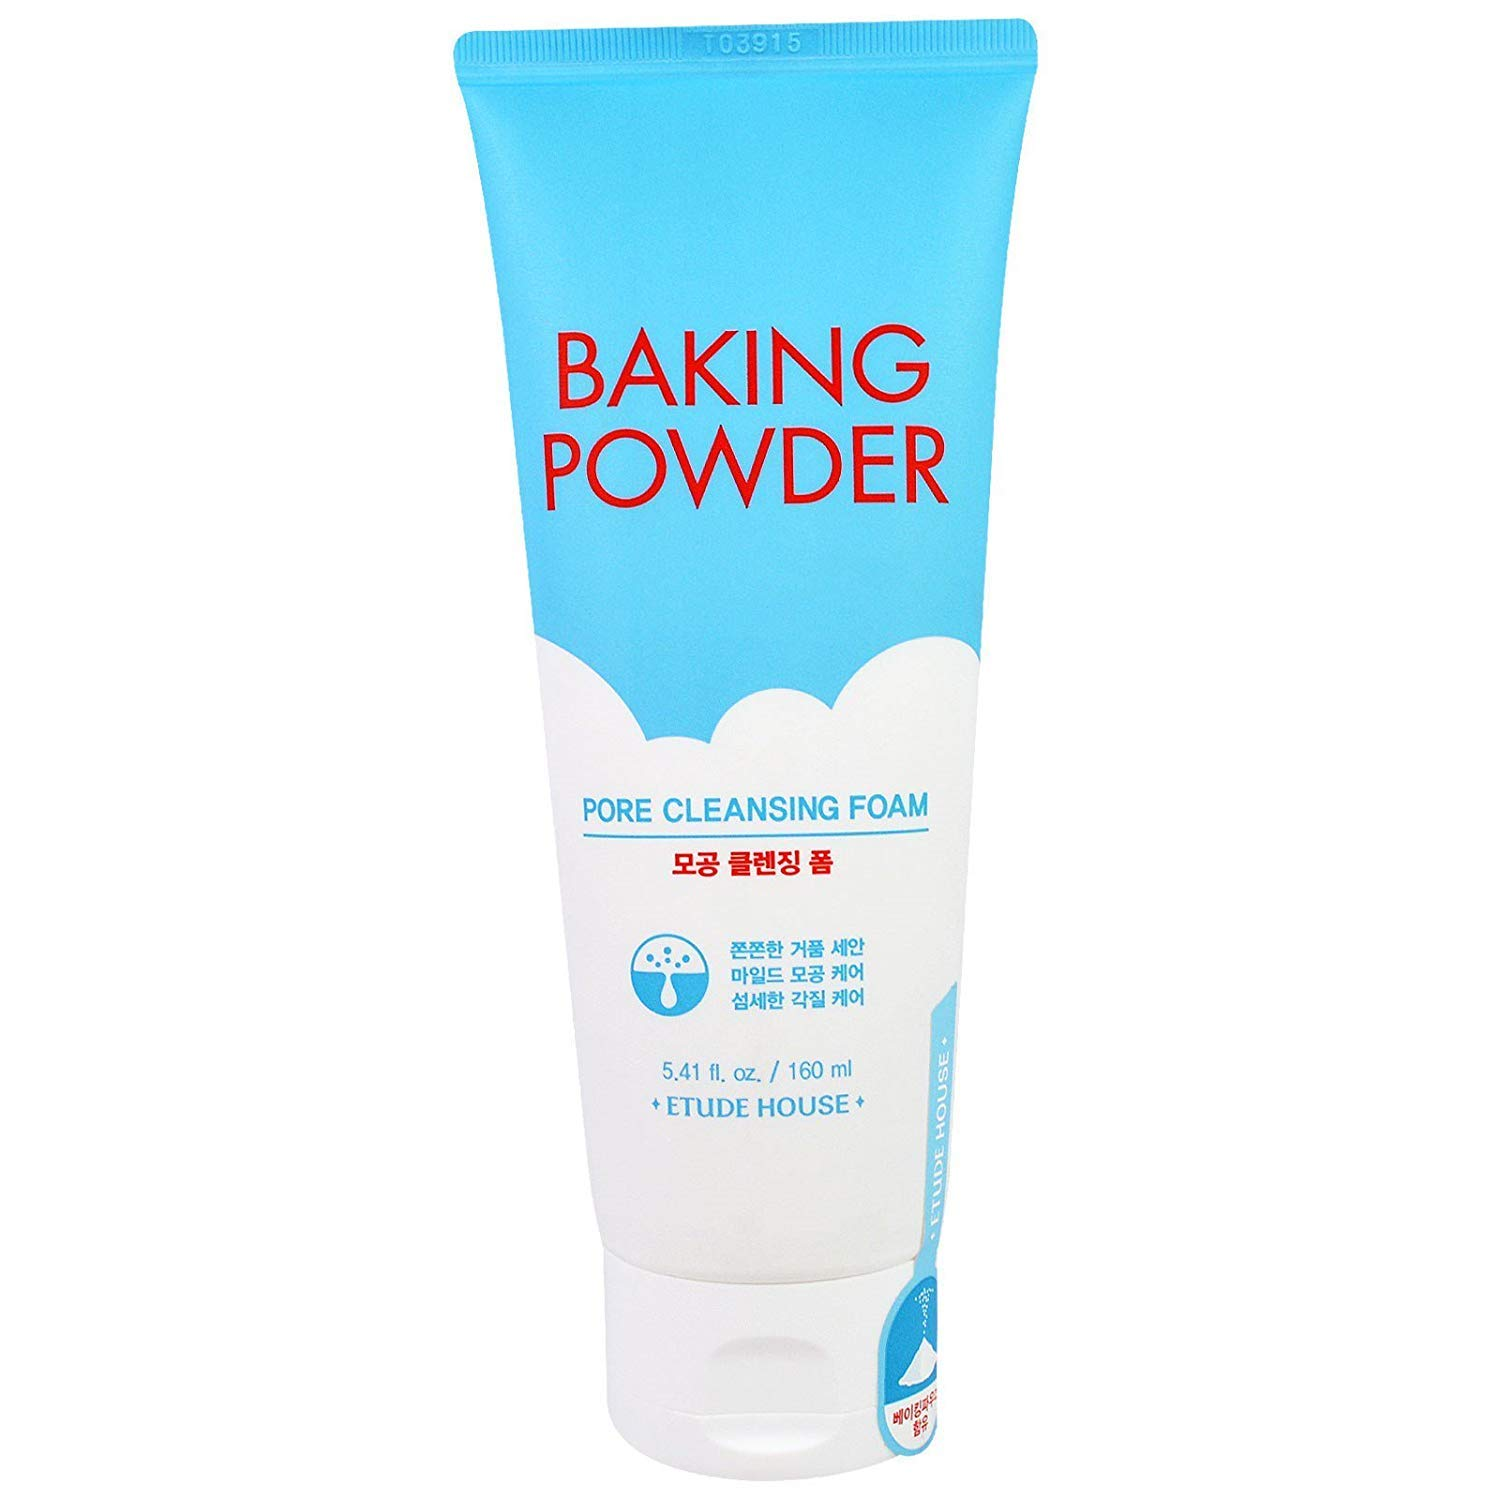 Etude House Baking Powder Pore Cleansing Foam 5 41 fl oz 160 ml | Multi-Deep Cleansing Foam to Remove Dead Cells, Impurities From Pores and Cleanse Away Makeup